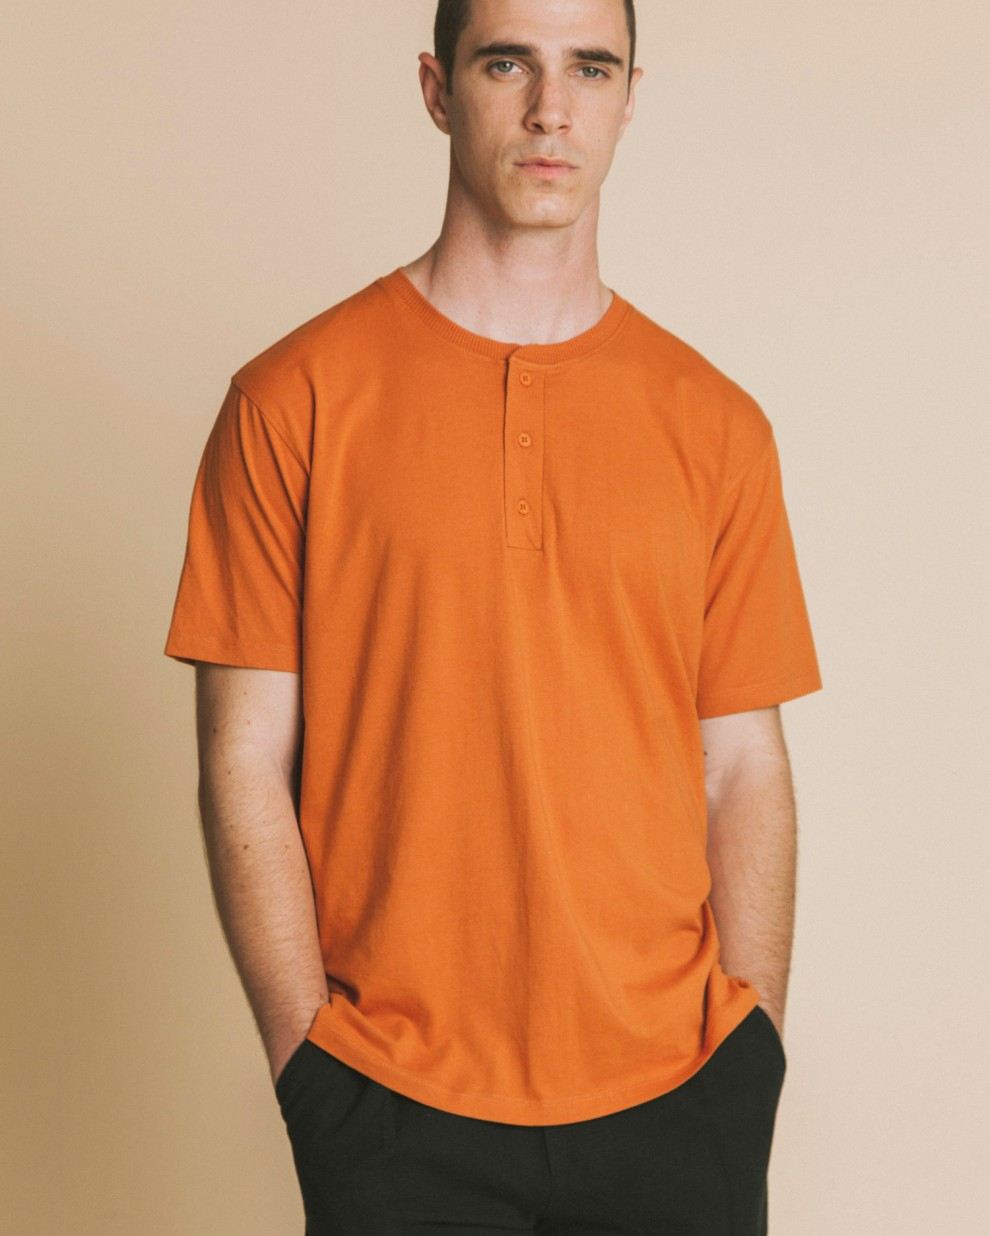 Brad terracota t-shirt